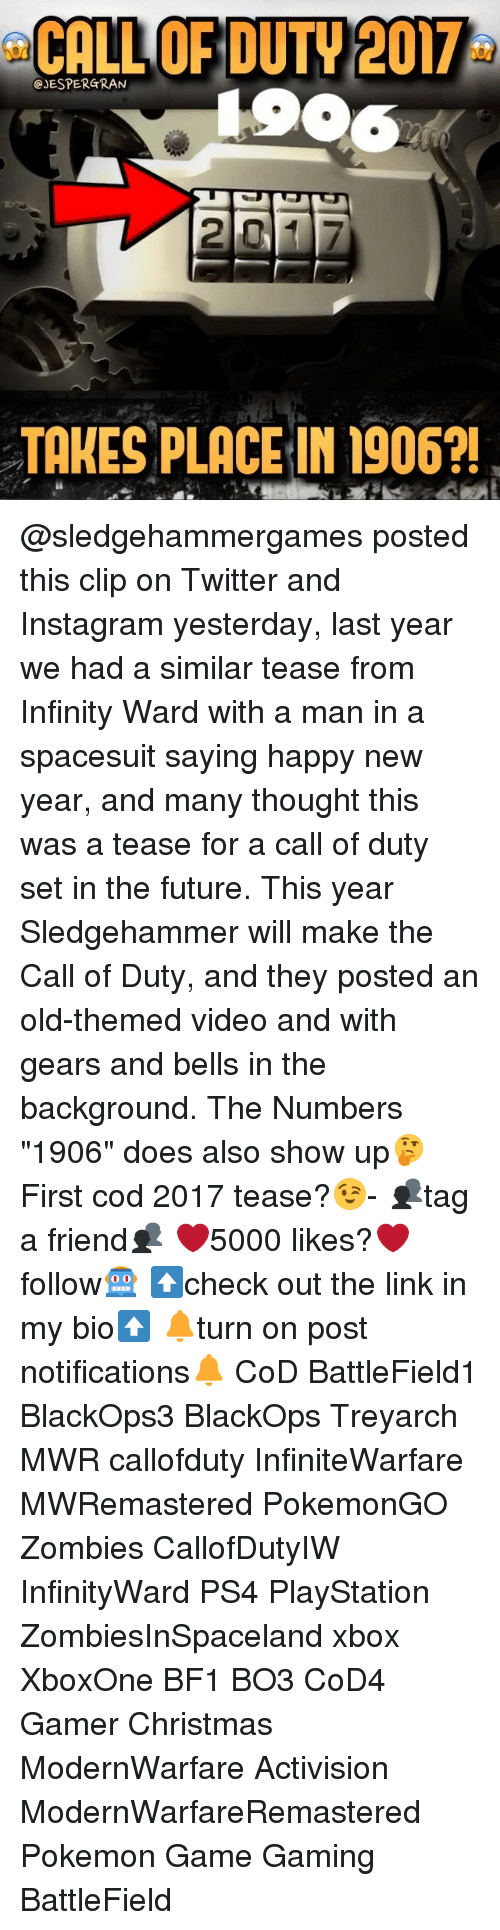 """Memes, PlayStation, and Pokemon: CALL OF DUTY 2017  GJESPERGRAN  TAKES PLACE IN 1906?! @sledgehammergames posted this clip on Twitter and Instagram yesterday, last year we had a similar tease from Infinity Ward with a man in a spacesuit saying happy new year, and many thought this was a tease for a call of duty set in the future. This year Sledgehammer will make the Call of Duty, and they posted an old-themed video and with gears and bells in the background. The Numbers """"1906"""" does also show up🤔 First cod 2017 tease?😉- 👥tag a friend👥 ❤️5000 likes?❤️ follow🤖 ⬆️check out the link in my bio⬆️ 🔔turn on post notifications🔔 CoD BattleField1 BlackOps3 BlackOps Treyarch MWR callofduty InfiniteWarfare MWRemastered PokemonGO Zombies CallofDutyIW InfinityWard PS4 PlayStation ZombiesInSpaceland xbox XboxOne BF1 BO3 CoD4 Gamer Christmas ModernWarfare Activision ModernWarfareRemastered Pokemon Game Gaming BattleField"""